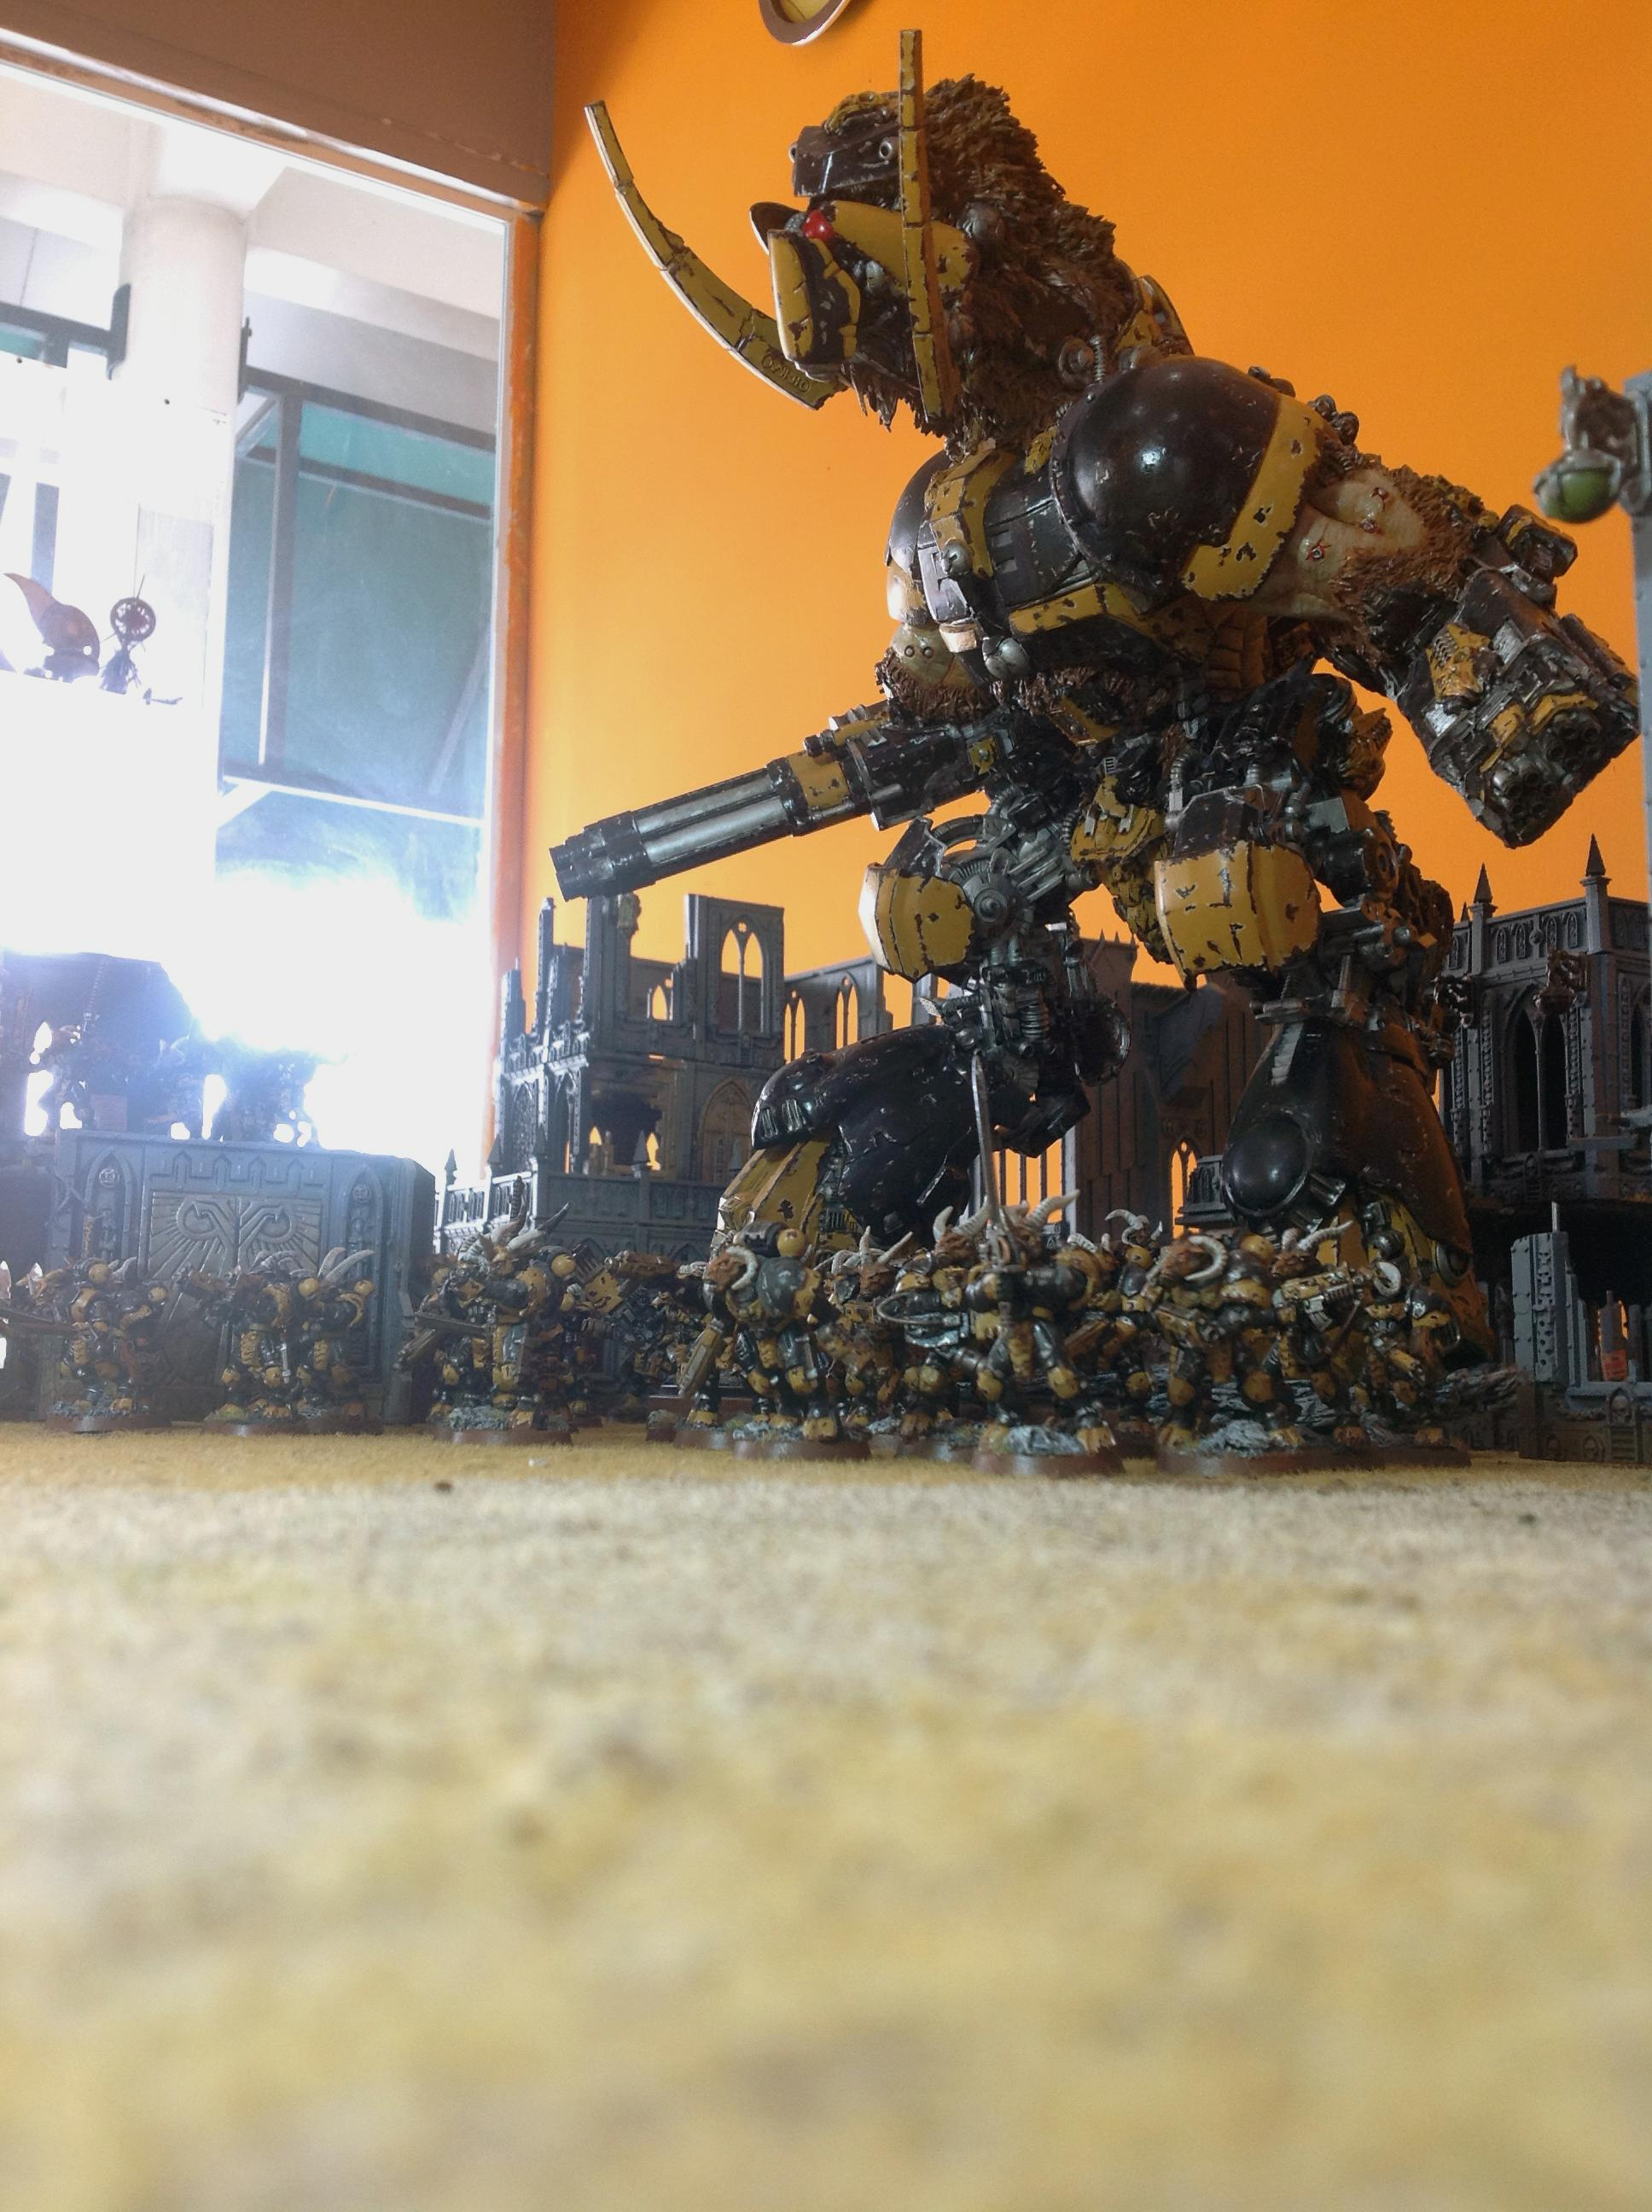 Beast, Beastmen, Cygor, Mercenary, Metal, Pattern, Space, Space Marines, Titan, Warhammer 40,000, Warhound, Wolves